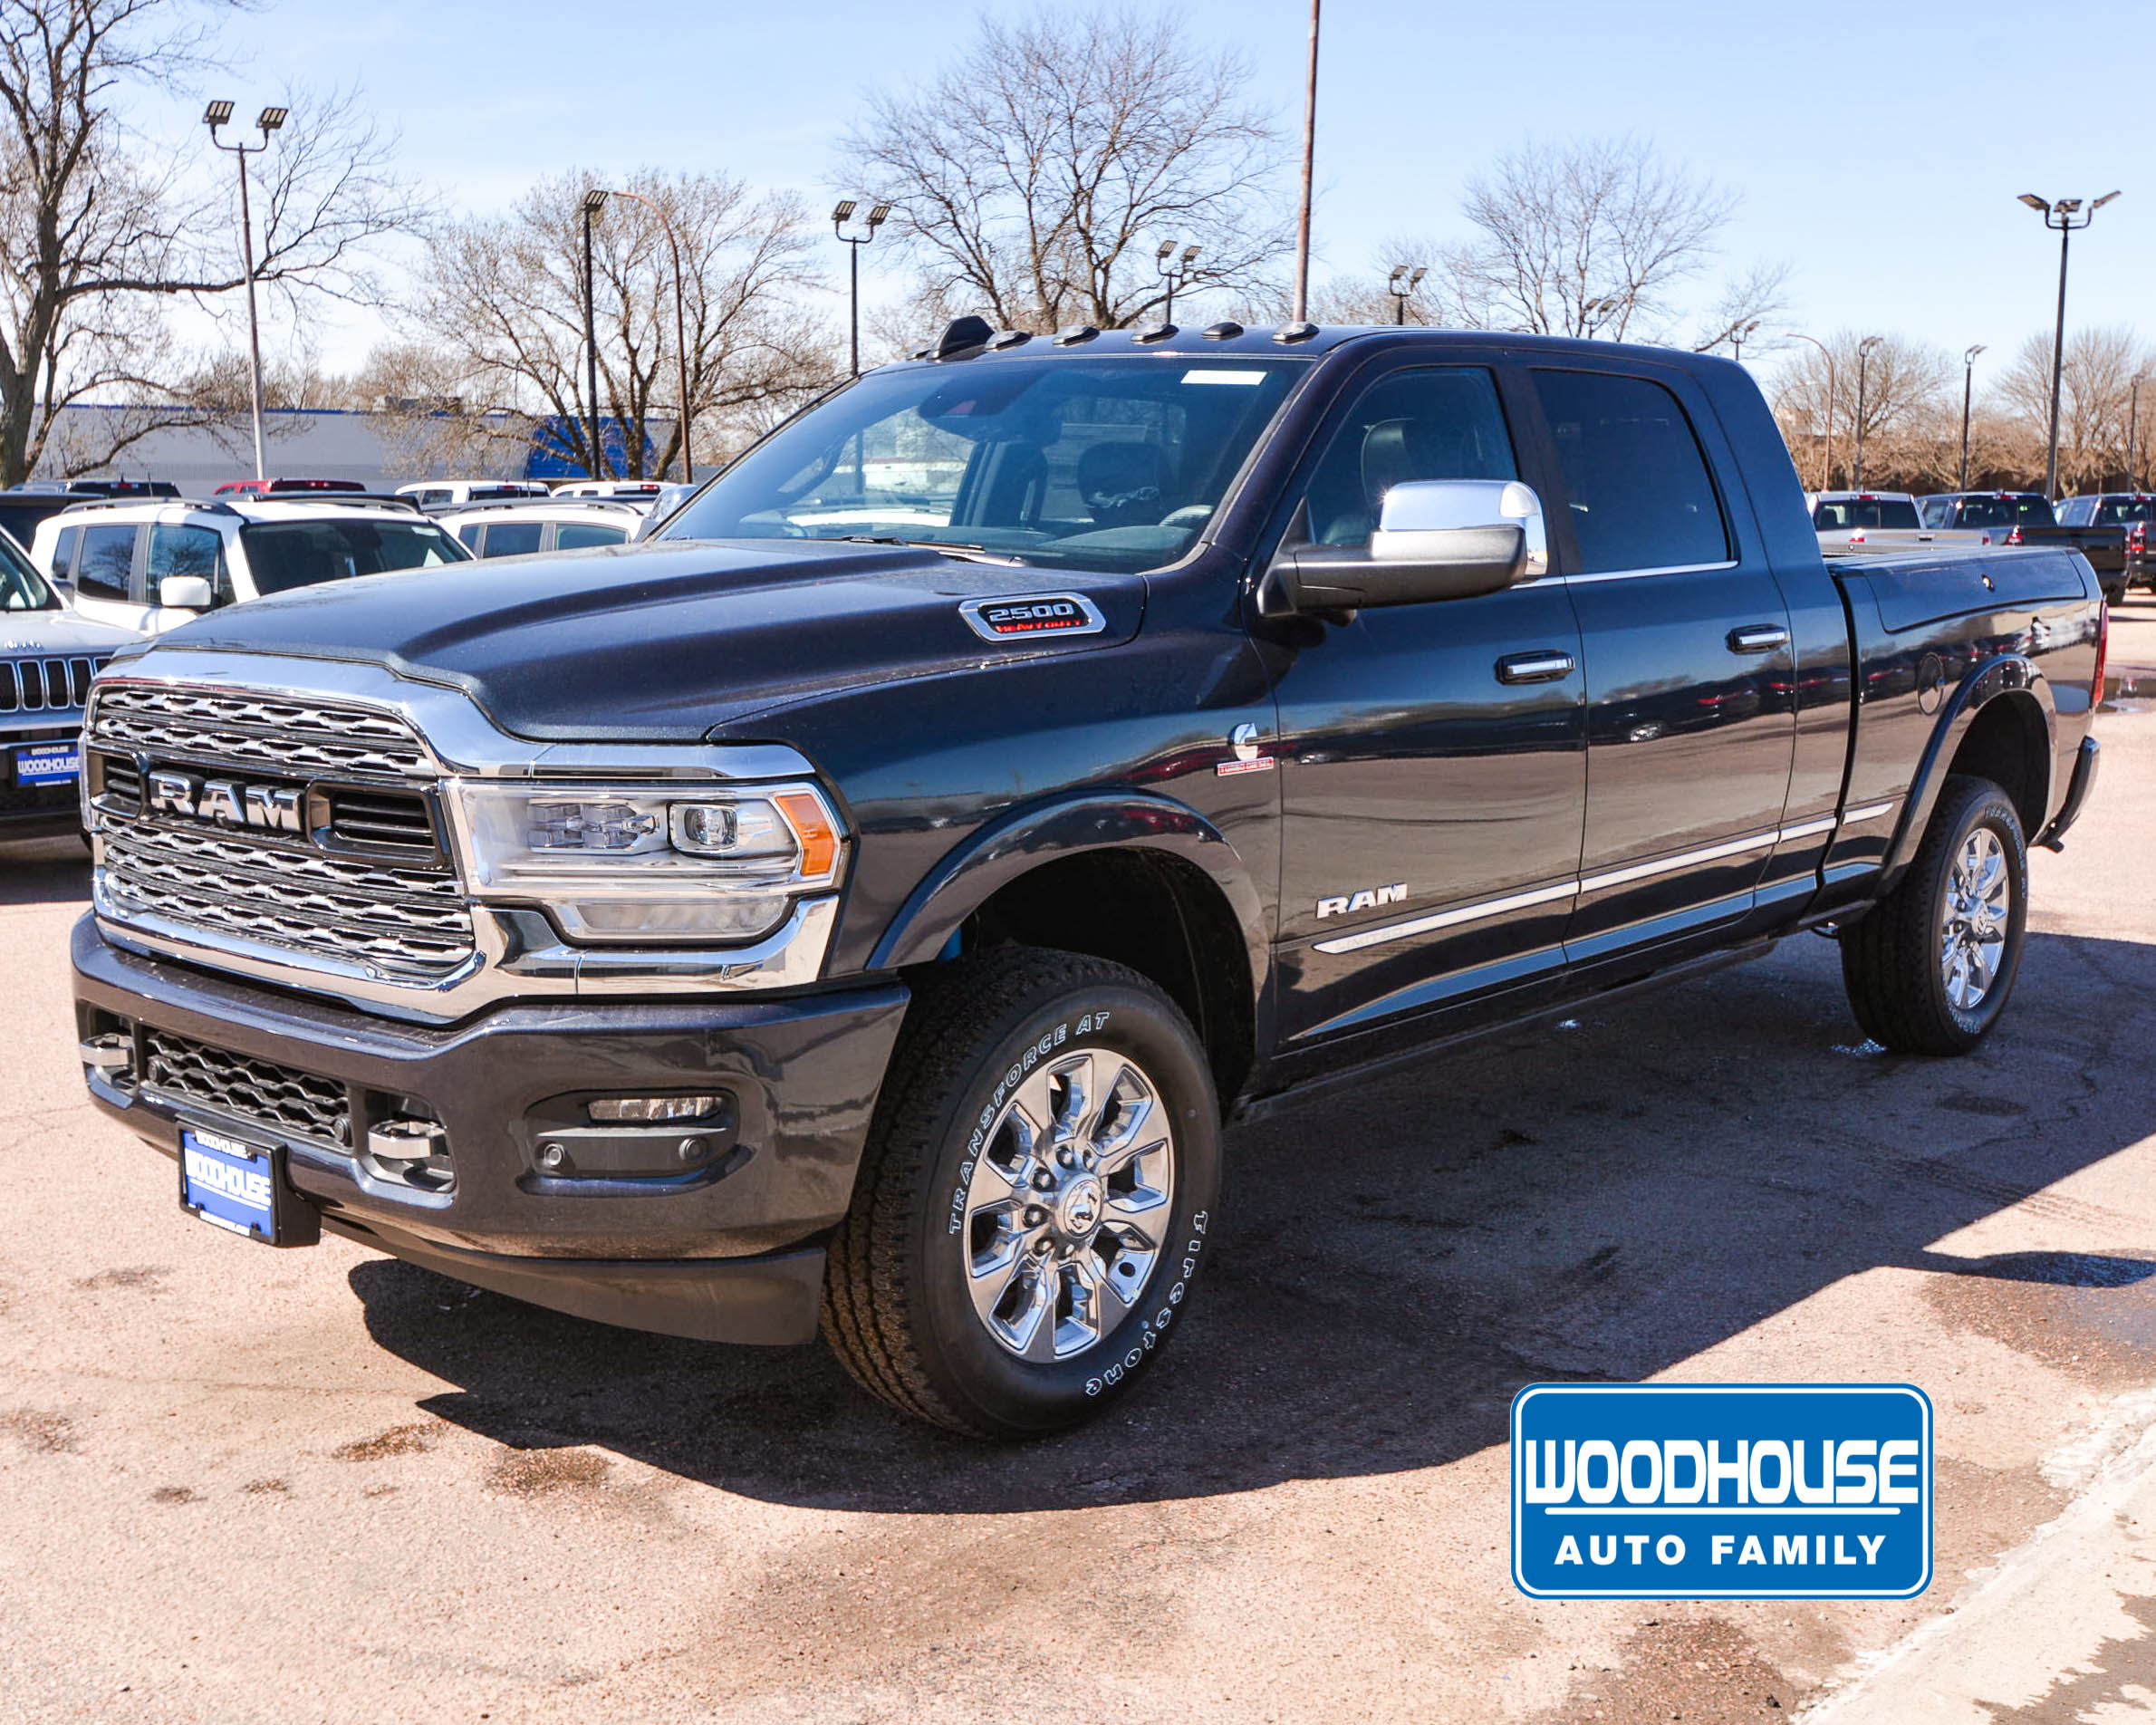 Ram 2500 For Sale >> Woodhouse New 2019 Ram 2500 For Sale Chrysler Dodge Jeep